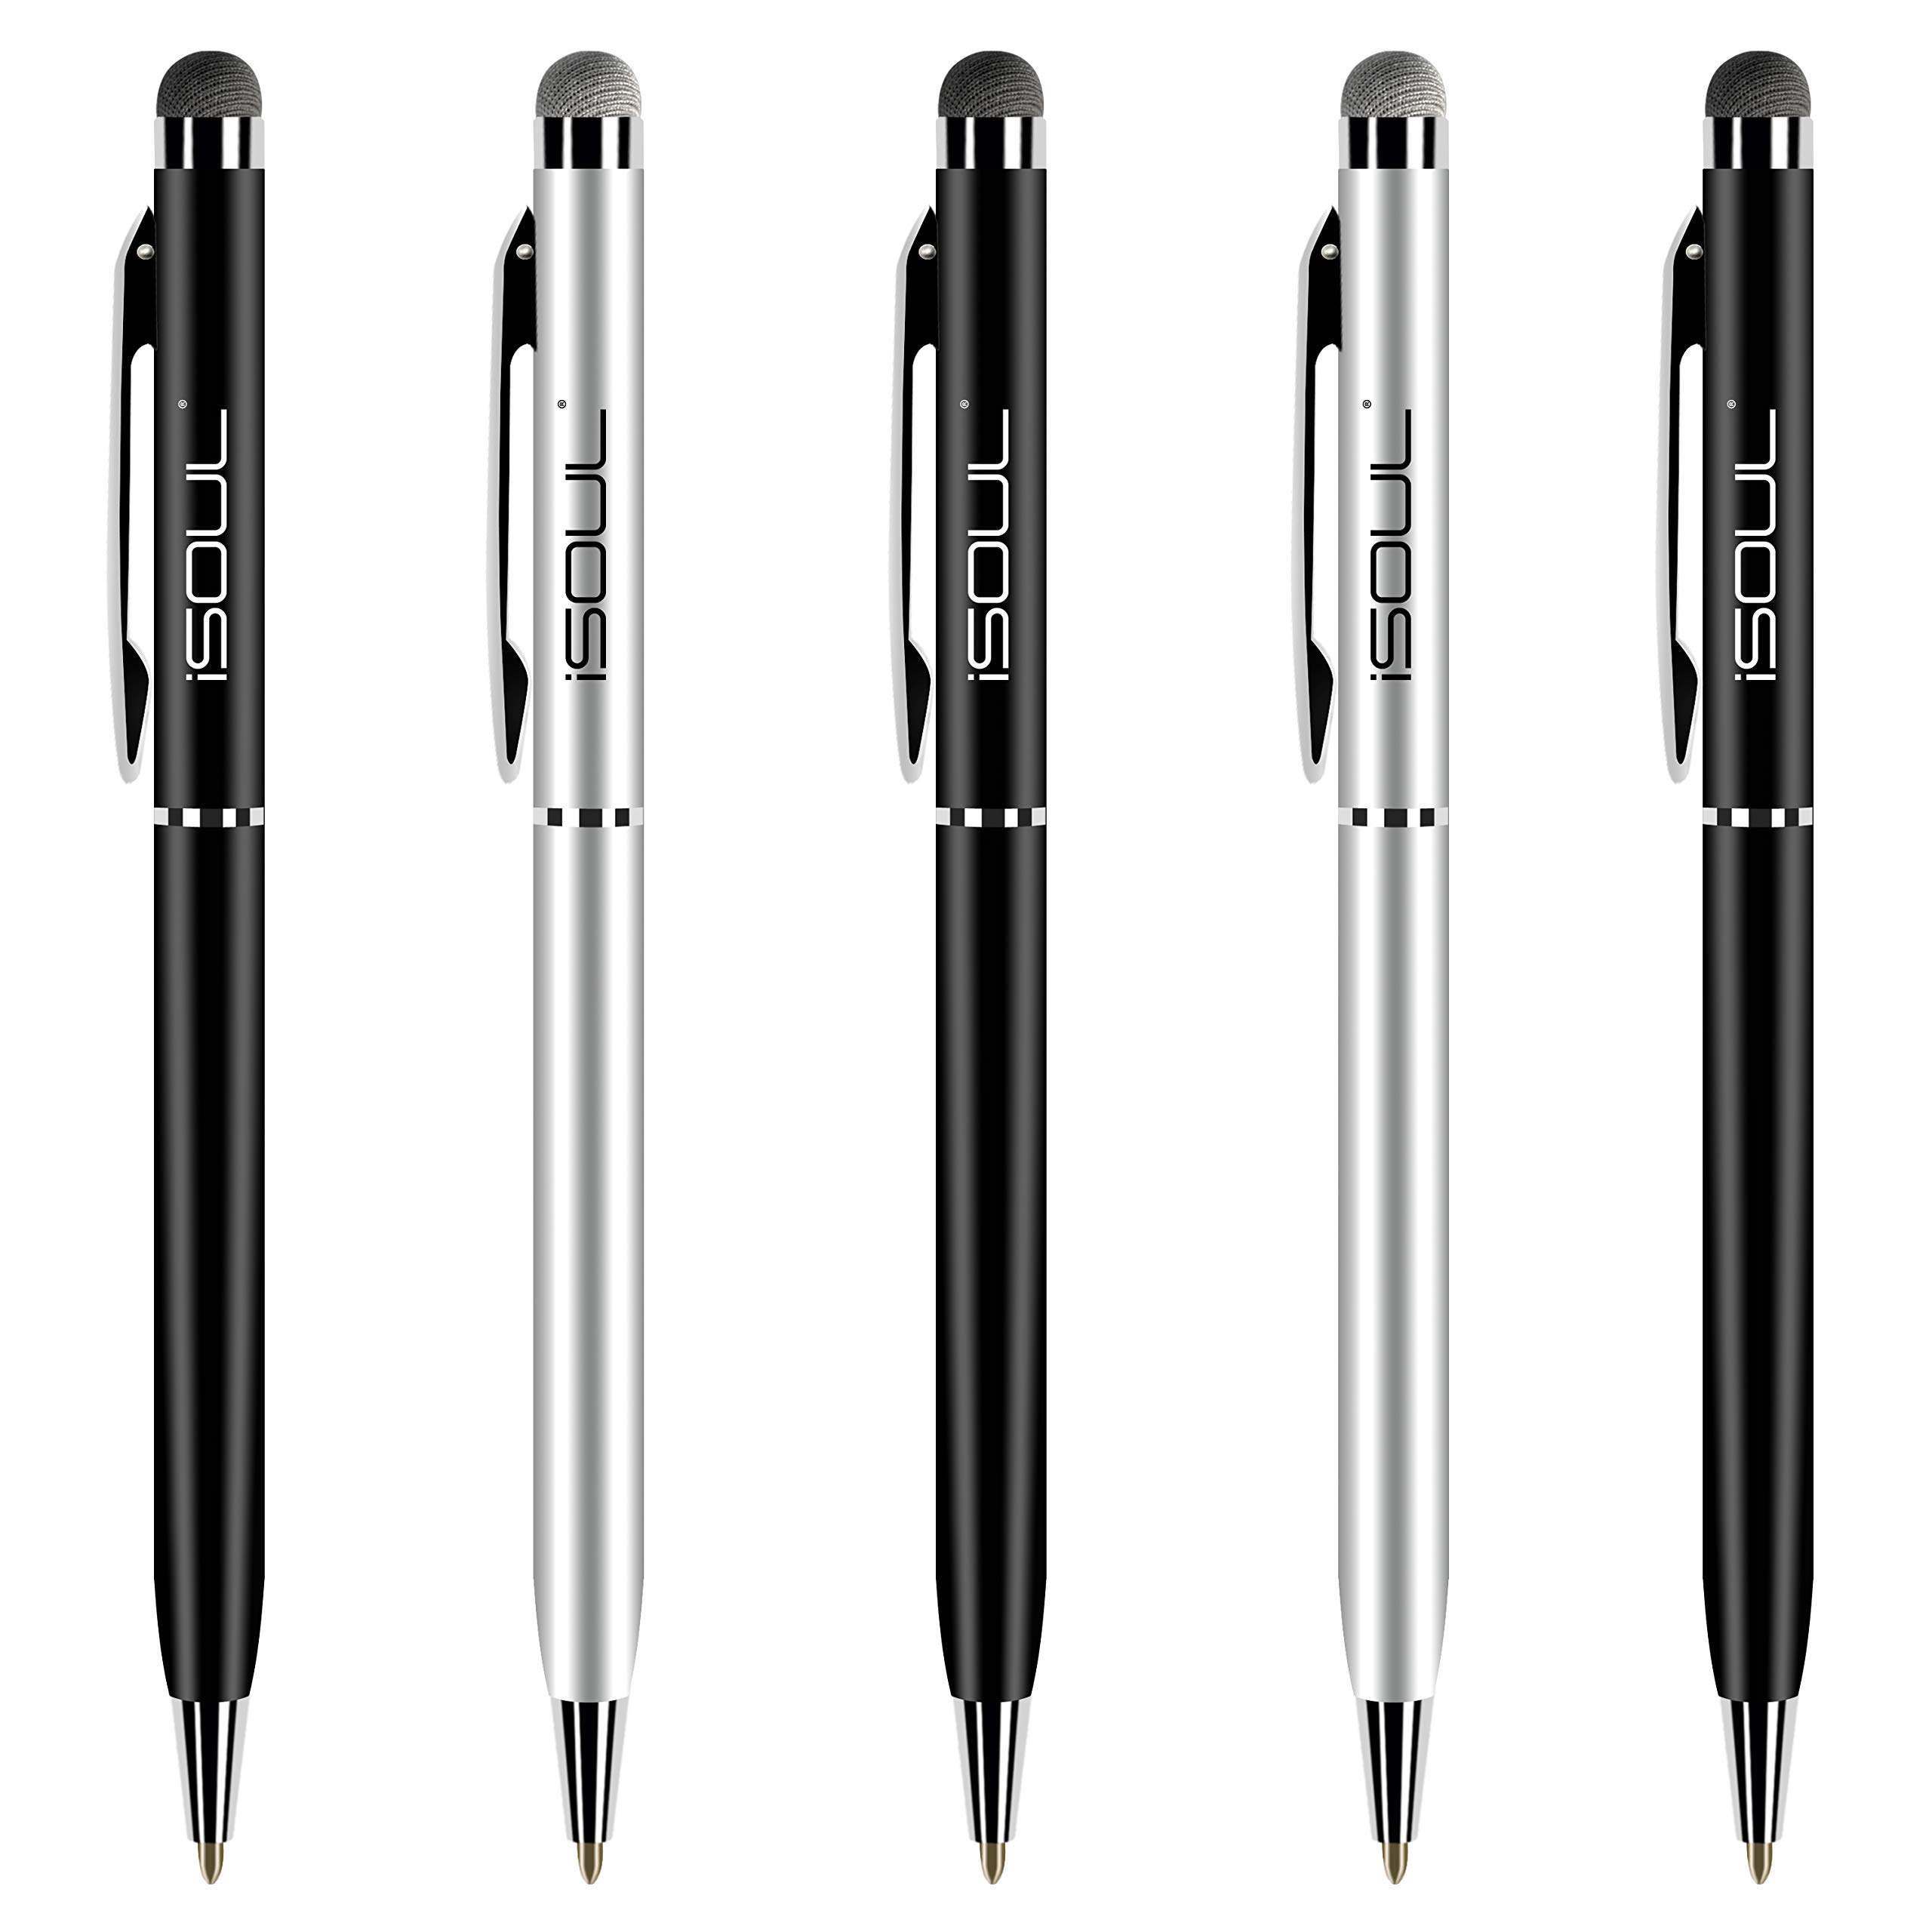 Google Pixel Samsung Galaxy iPhone Stylus Touch Pen, Official stylus for Apple iPads ISOUL Stylus Pen Stylus Pens for Touch Screens Tablets /& More- Black Metal Styli iPad OnePlus 5 Pack